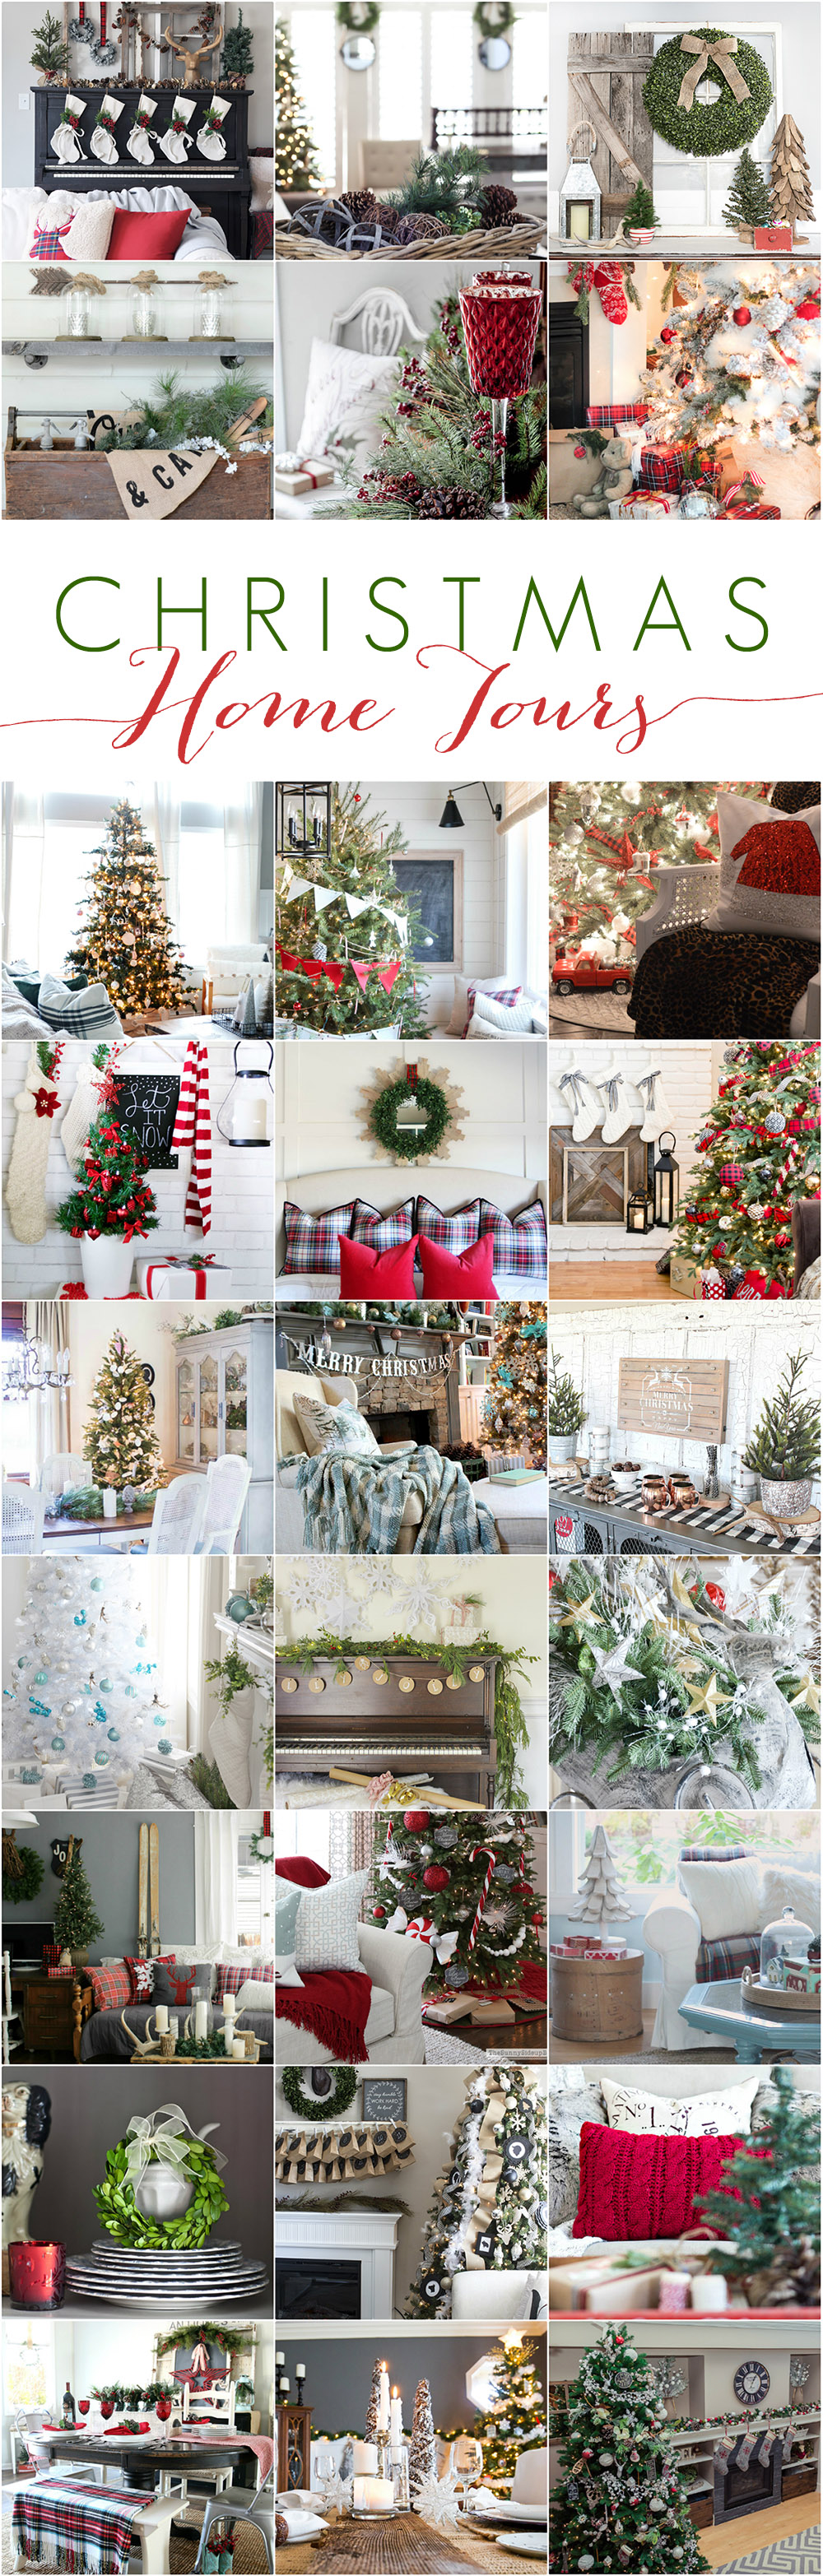 See 27 gorgeous Christmas Home Tours and holiday home decorating ideas!